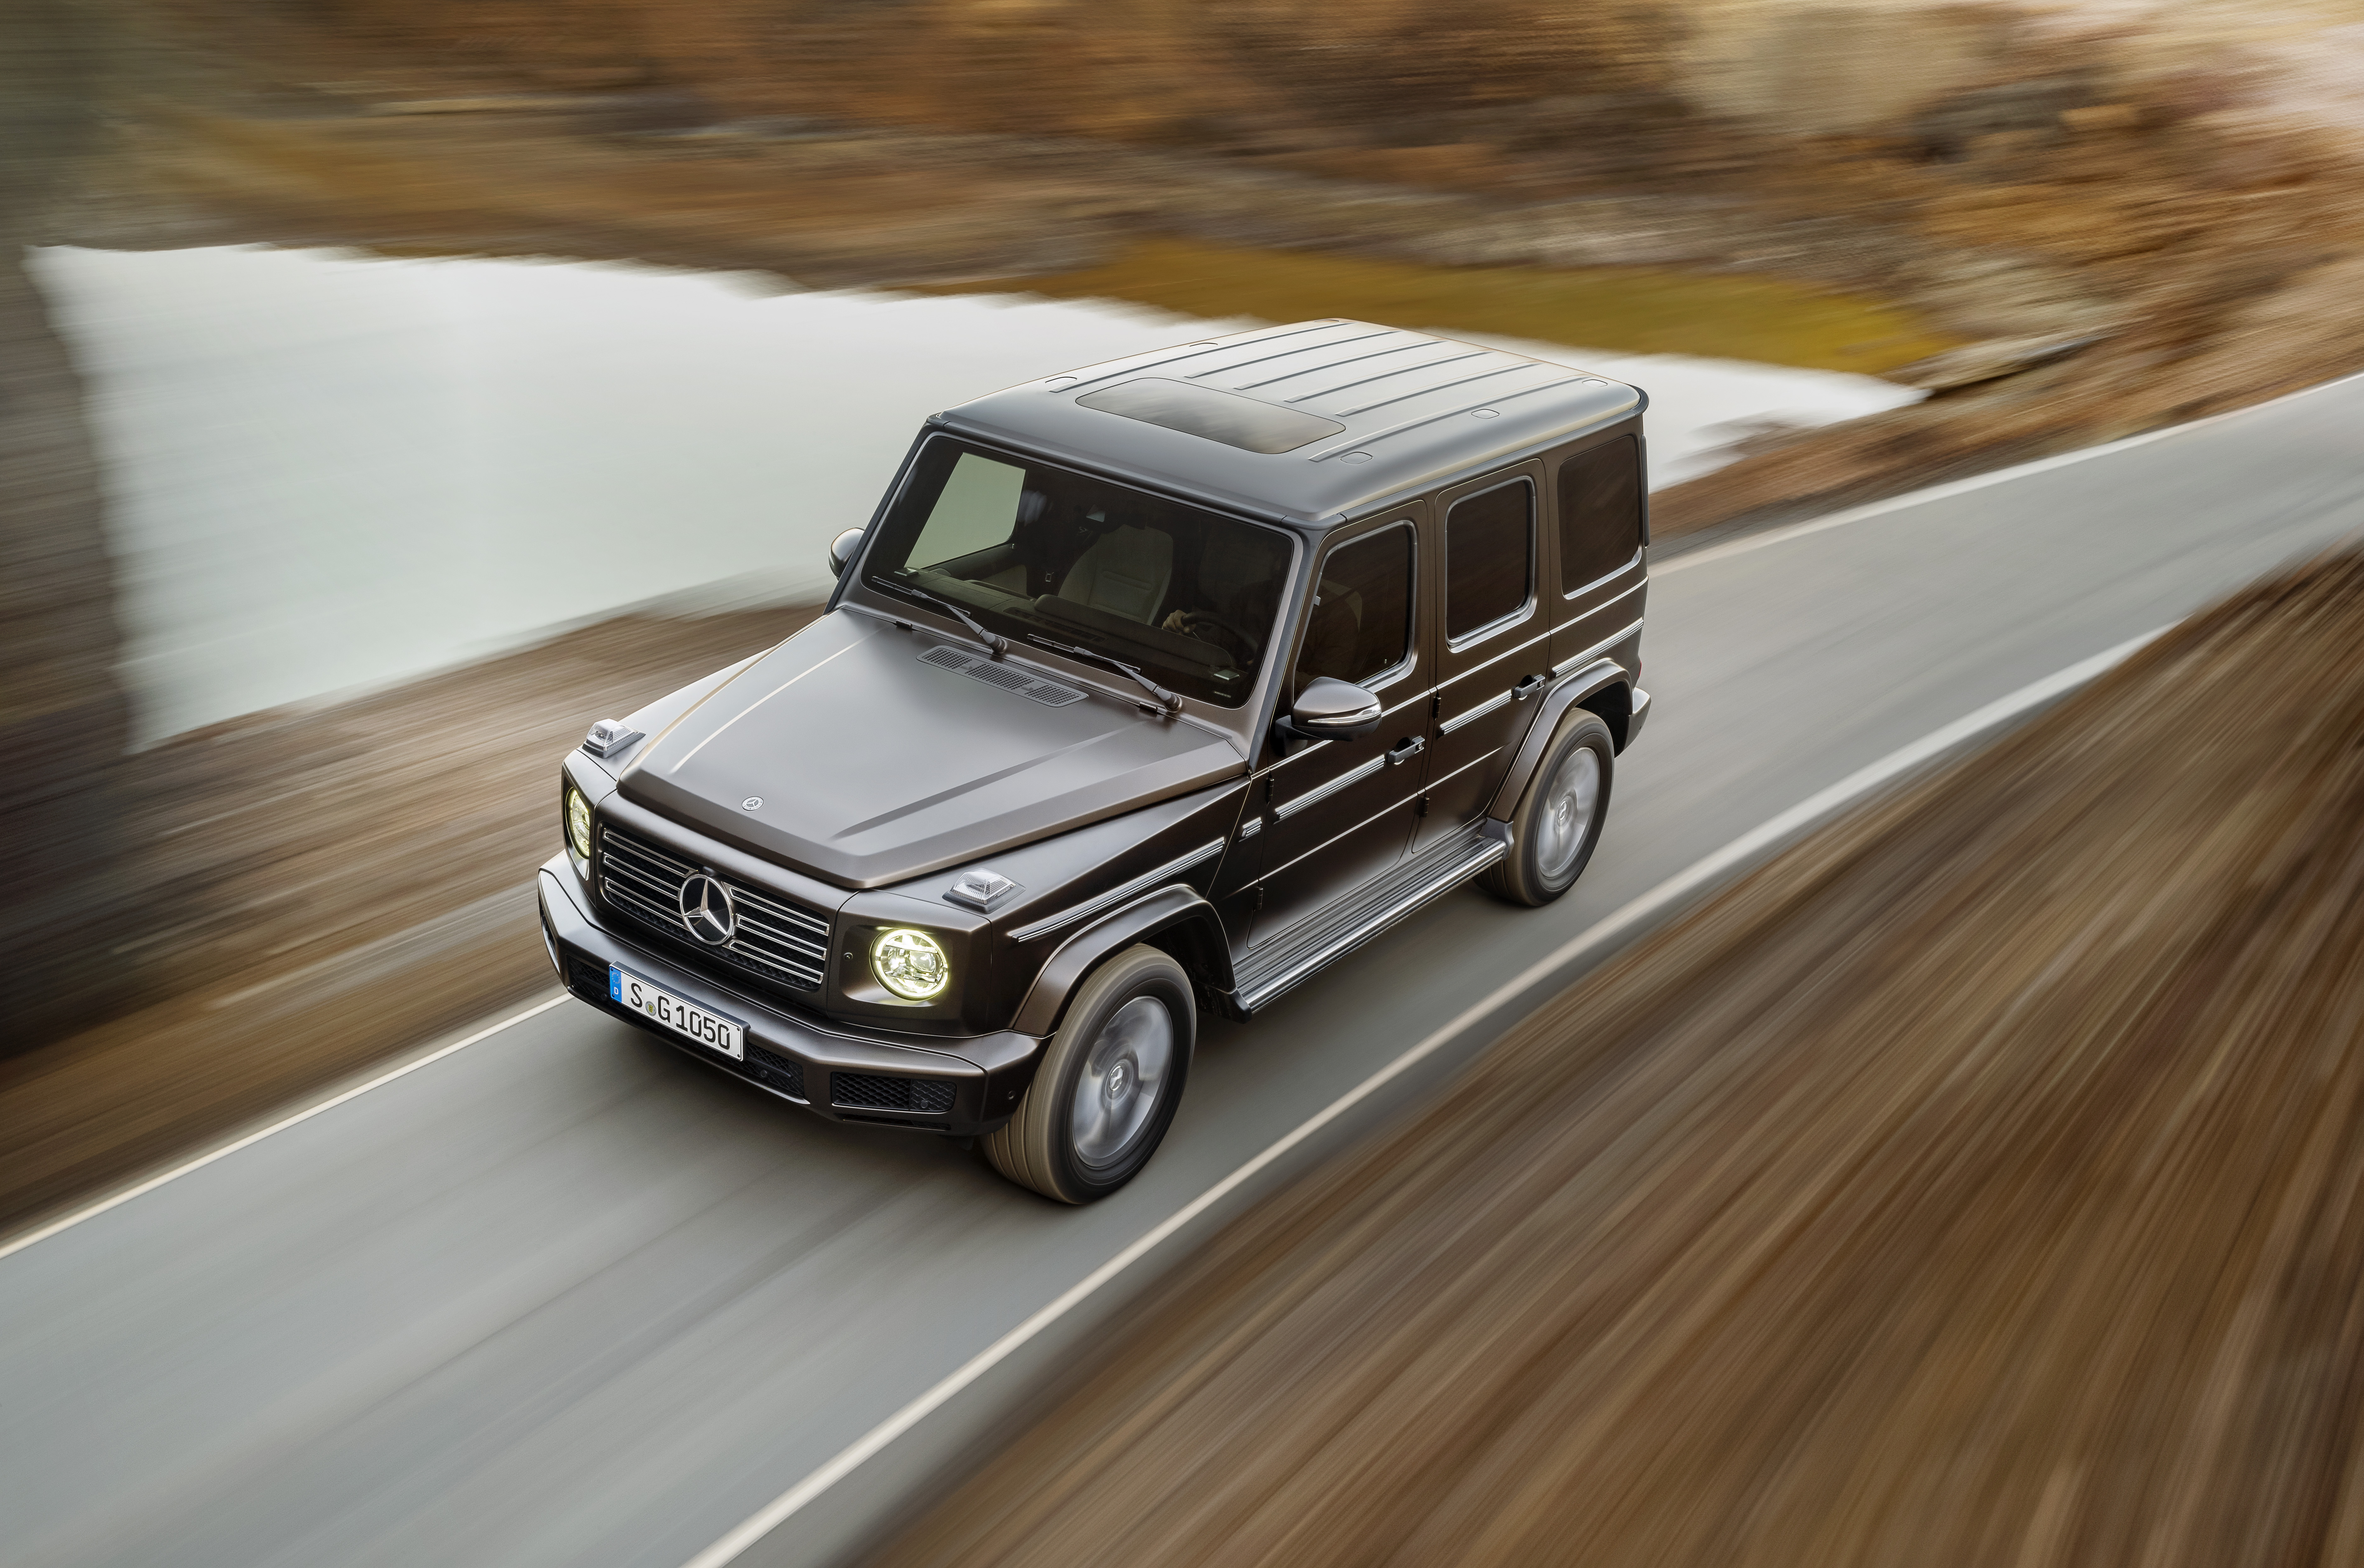 2019 Mercedes G Class Hd Cars 4k Wallpapers Images Backgrounds Photos And Pictures